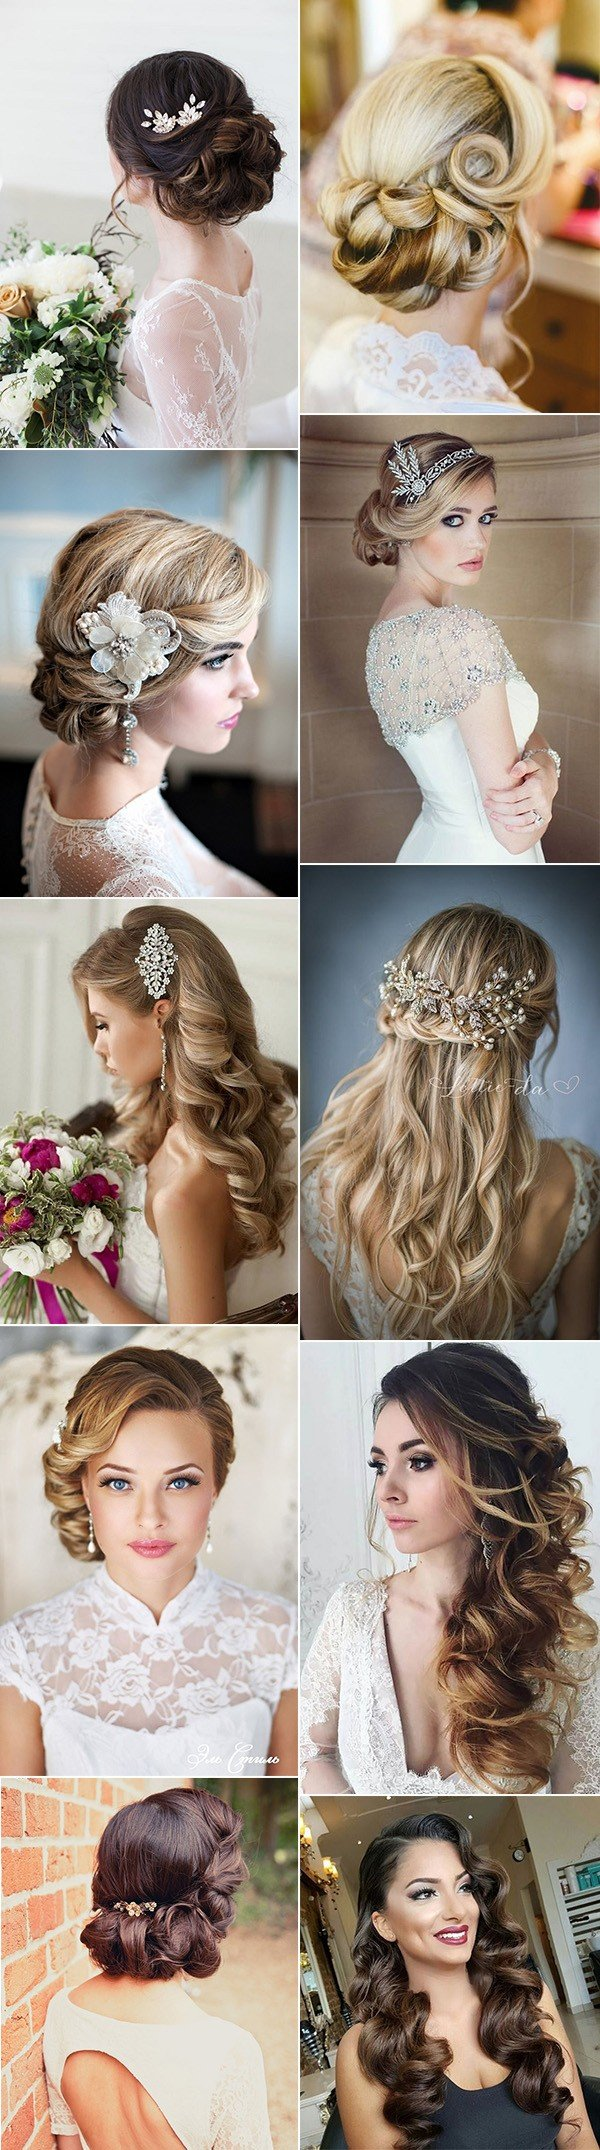 top 20 vintage wedding hairstyles for brides - page 2 of 3